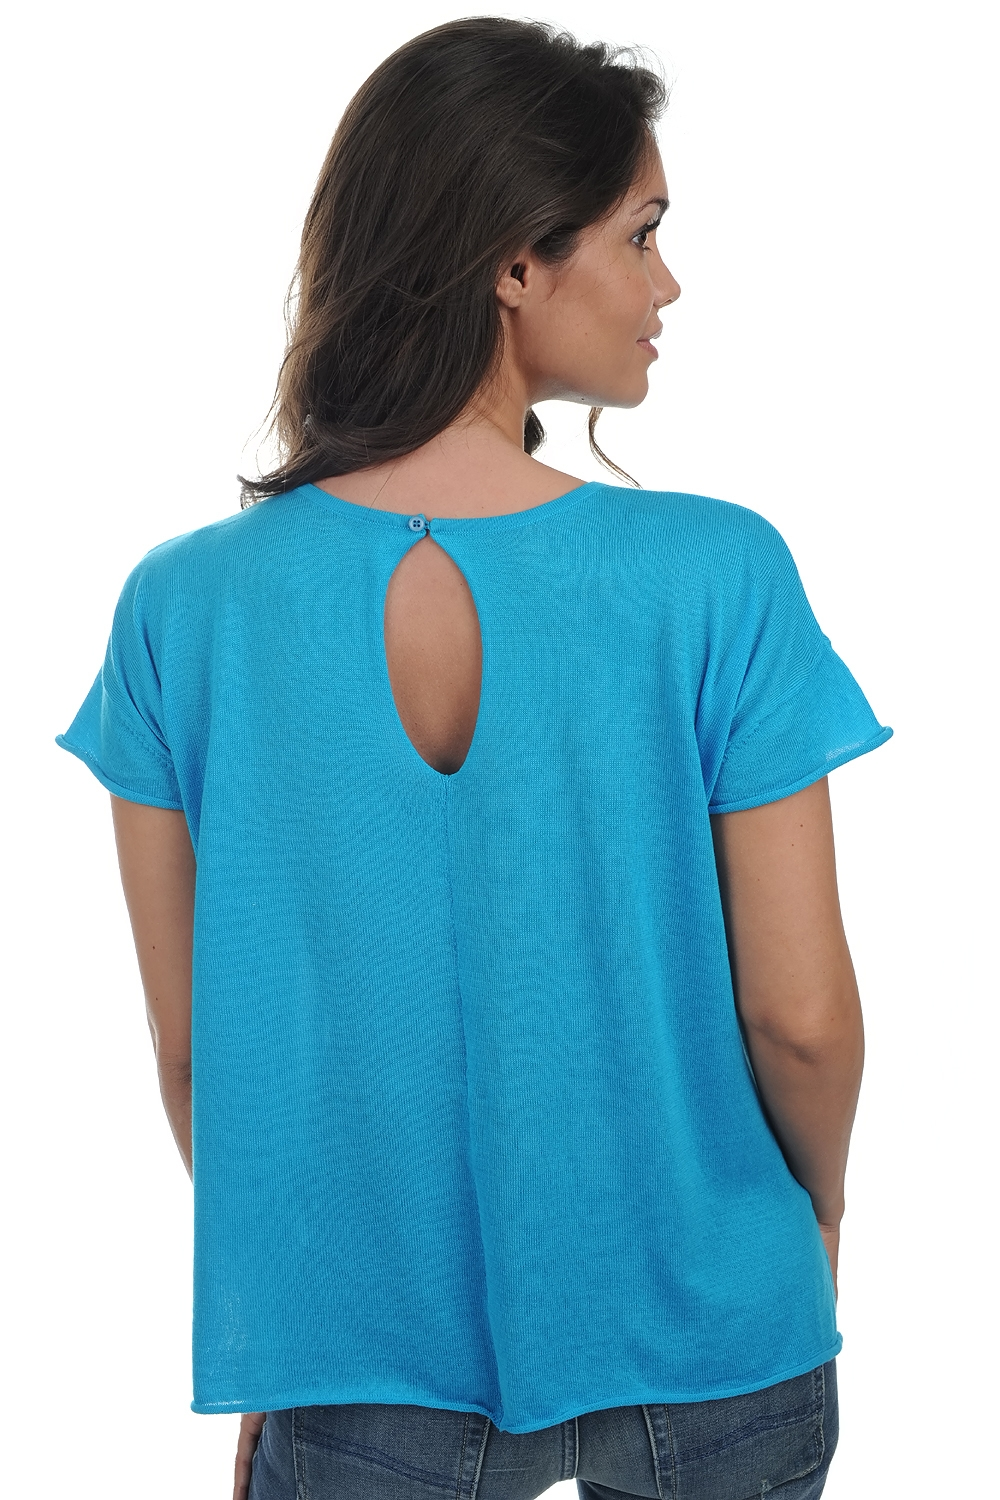 cotton giza 45 ladies round necks kimberley turquoise s2